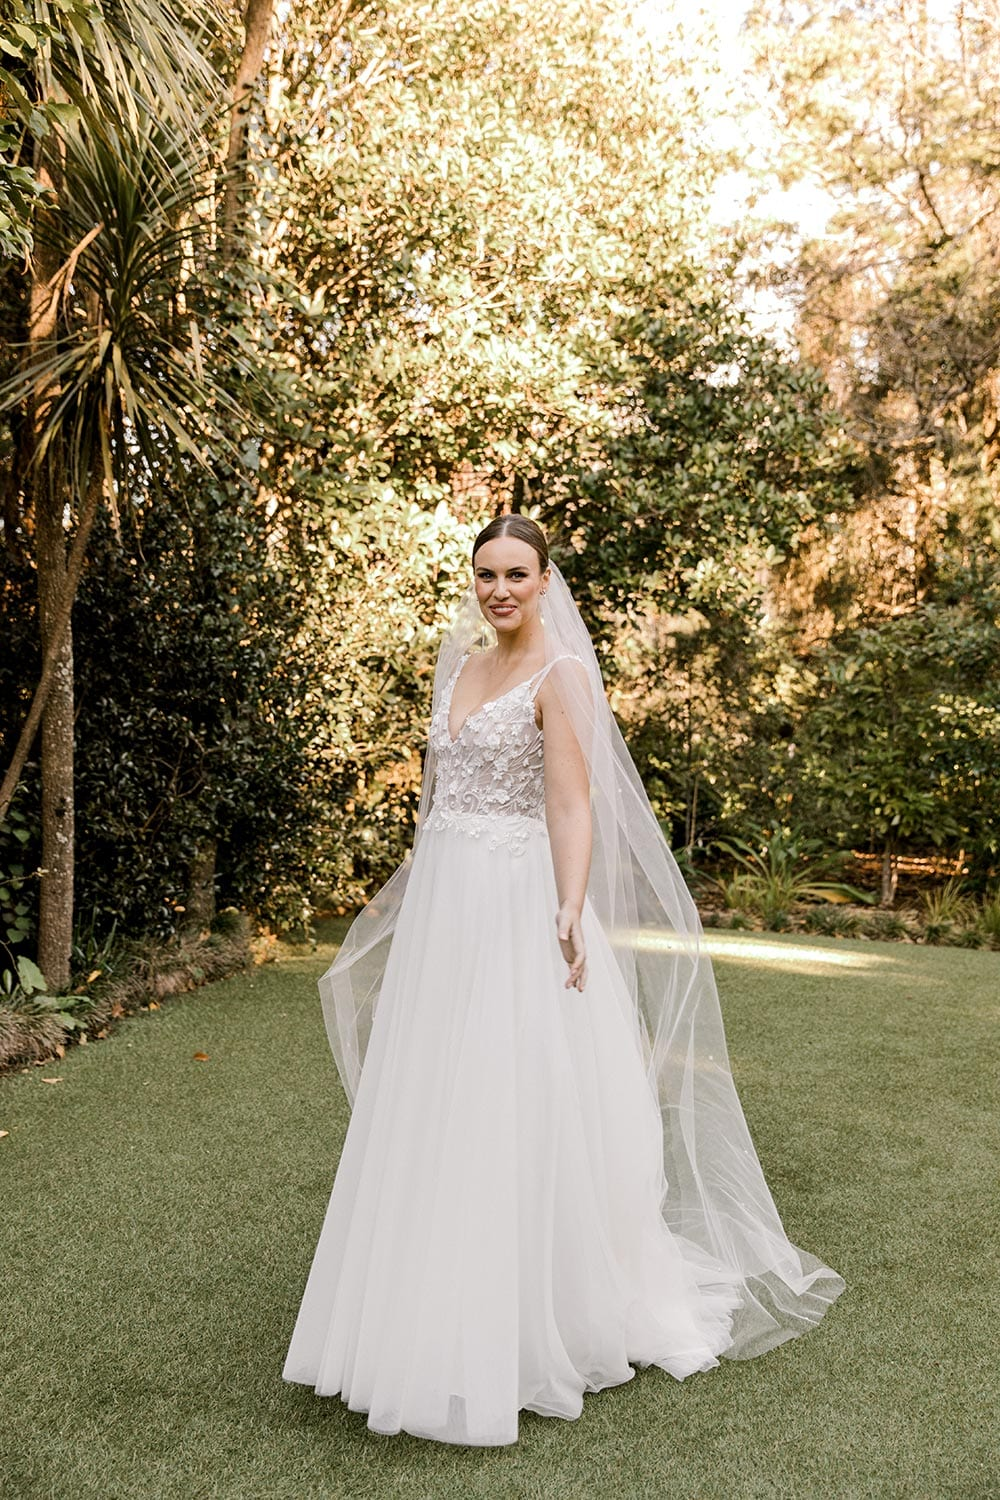 Serena Wedding Gown from Vinka Design - Classic & feminine wedding gown. Deep V-neckline semi-sheer structured bodice appliqued with flowers & leaves. Dreamy layered soft tulle skirt with side-split. Full length photo of model in dress. Photograph in landscaped gardens.